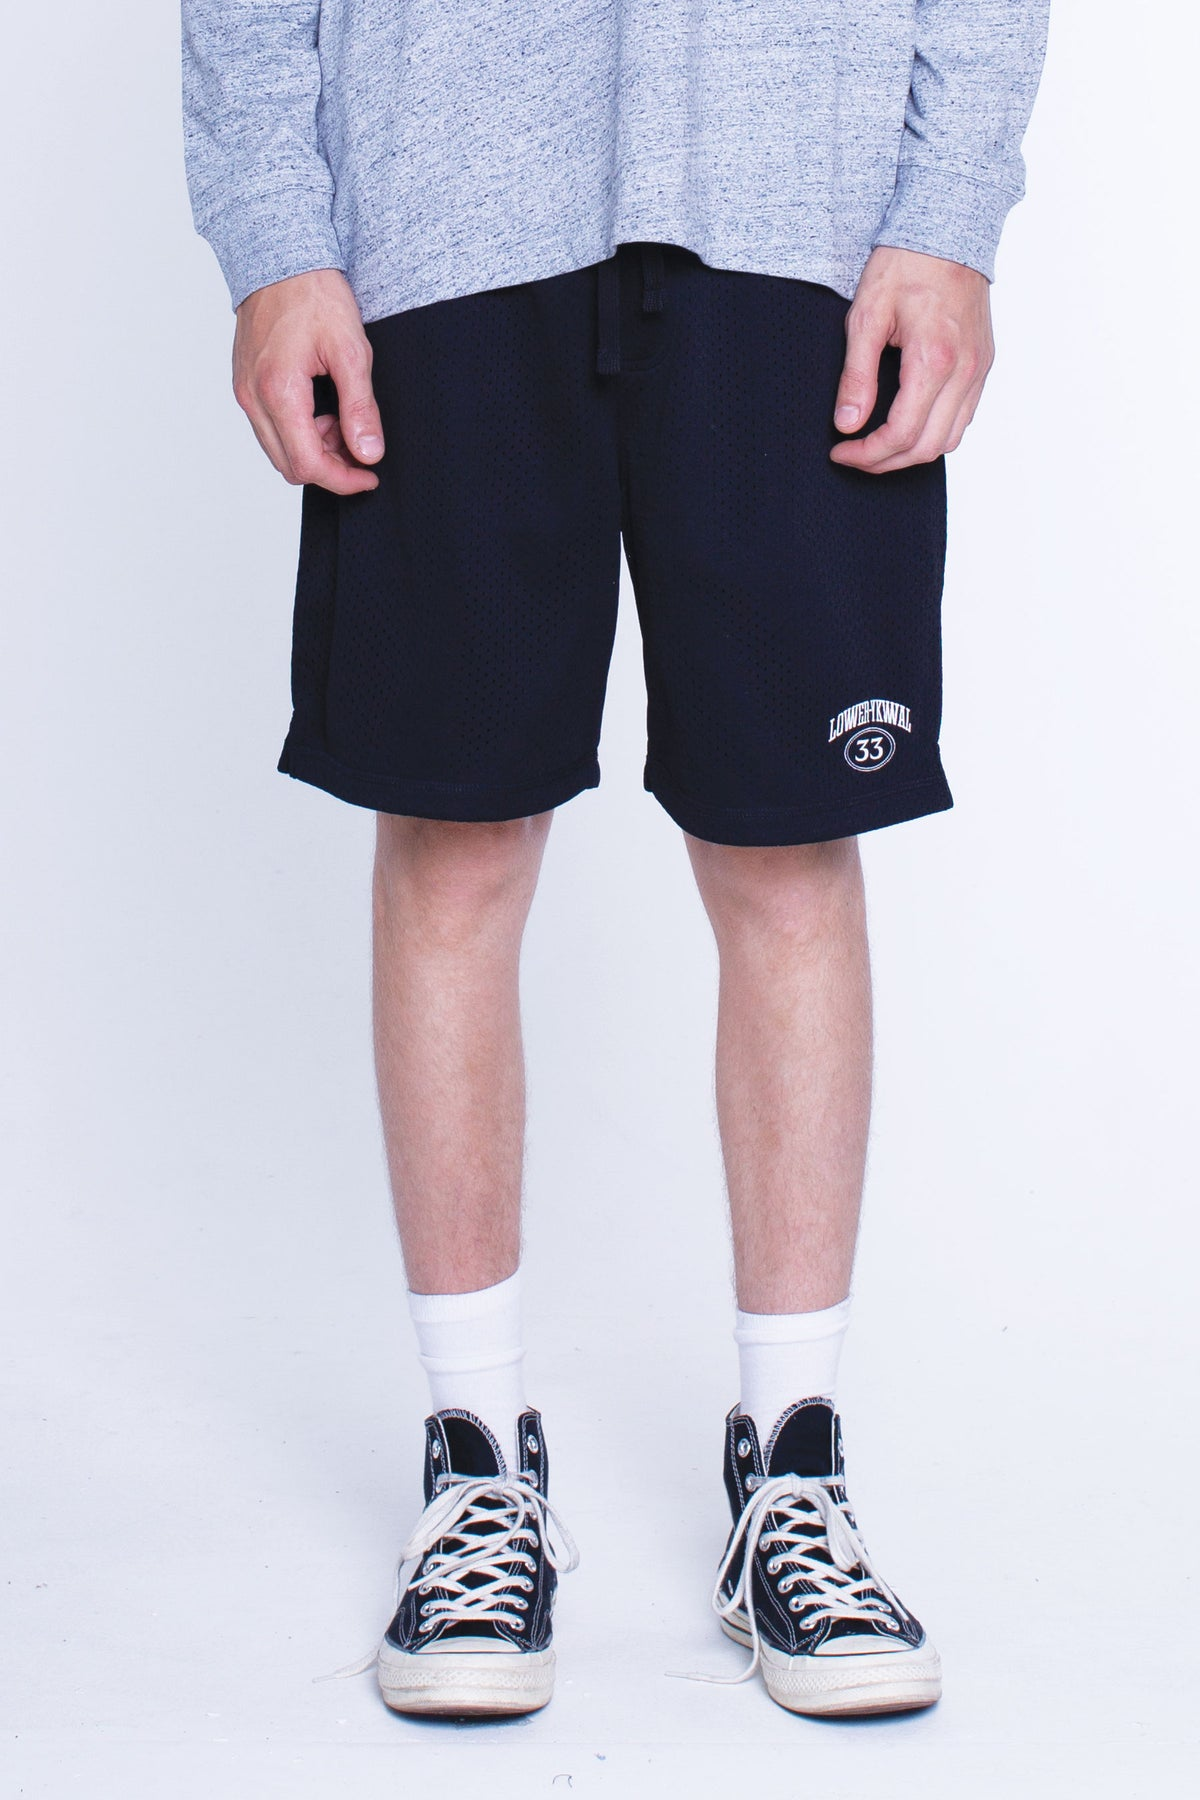 Mens Snell Shorts - Hoop Dreams - Black